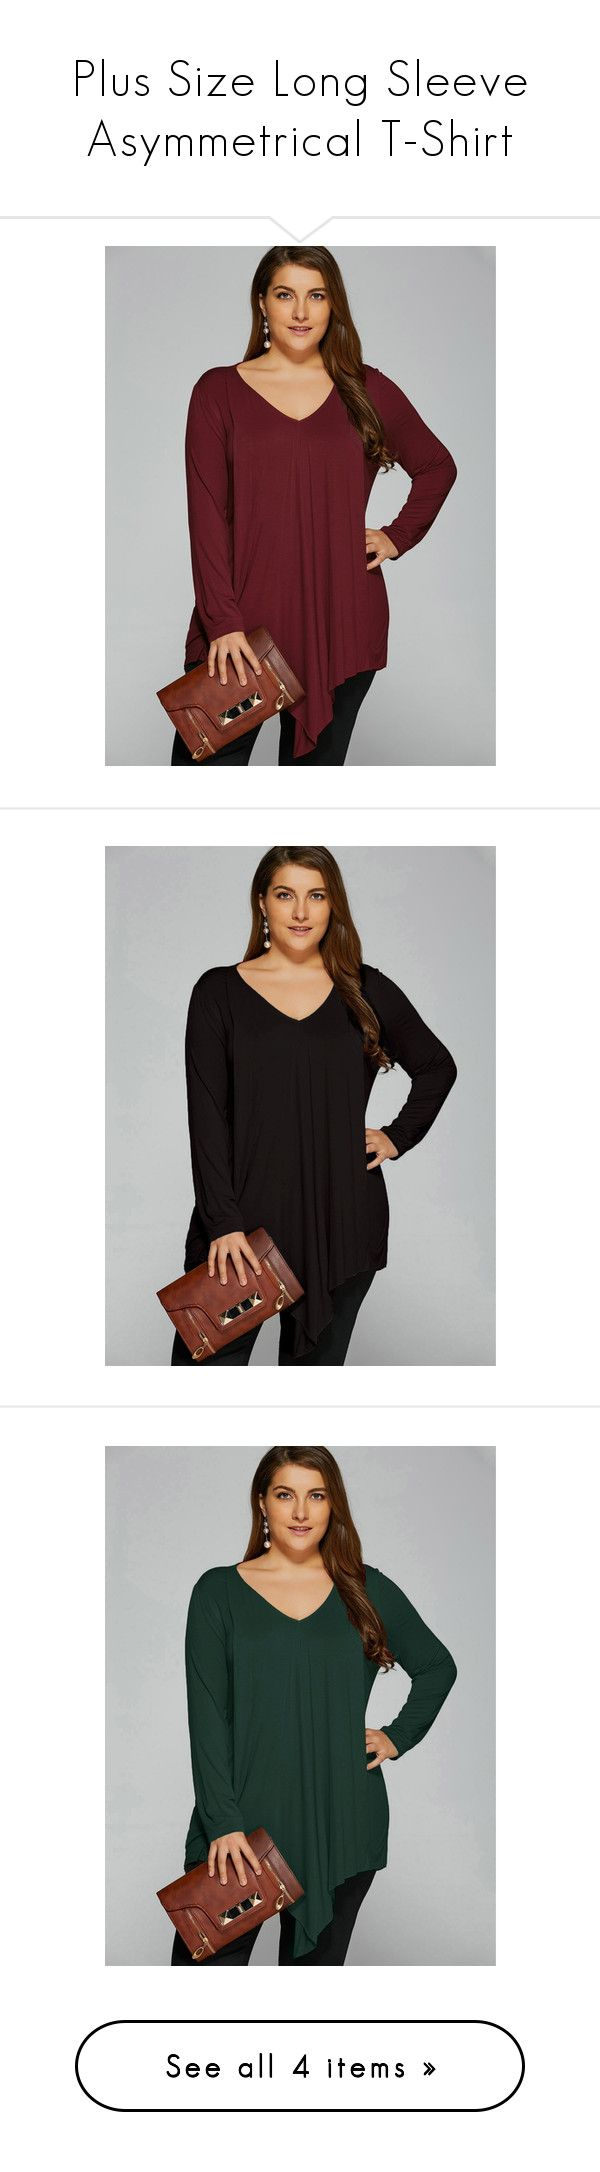 """Plus Size Long Sleeve Asymmetrical T-Shirt"" by rosegal-official ❤ liked on Polyvore featuring tops, t-shirts, plus size long sleeve tee, plus size women's t shirts, womens plus tops, women's plus size tops, red t shirt, women's plus size graphic tees, long sleeve t shirts and plus size tees"